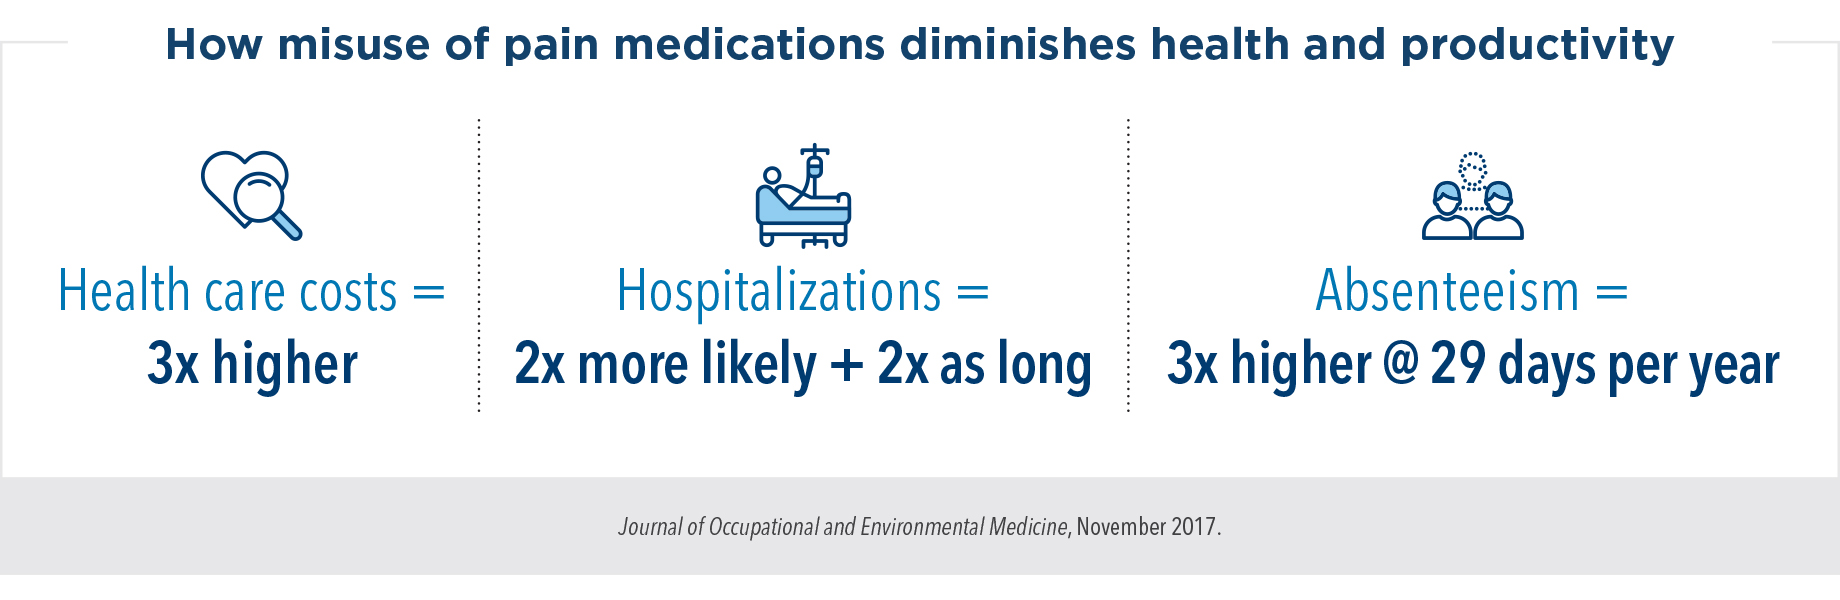 How misuse of pain medications diminishes health and productivity: Health care costs = 3 times higher; hospitalizations = two times more likely and two times as long; absenteeism = three times higher at 29 days per year